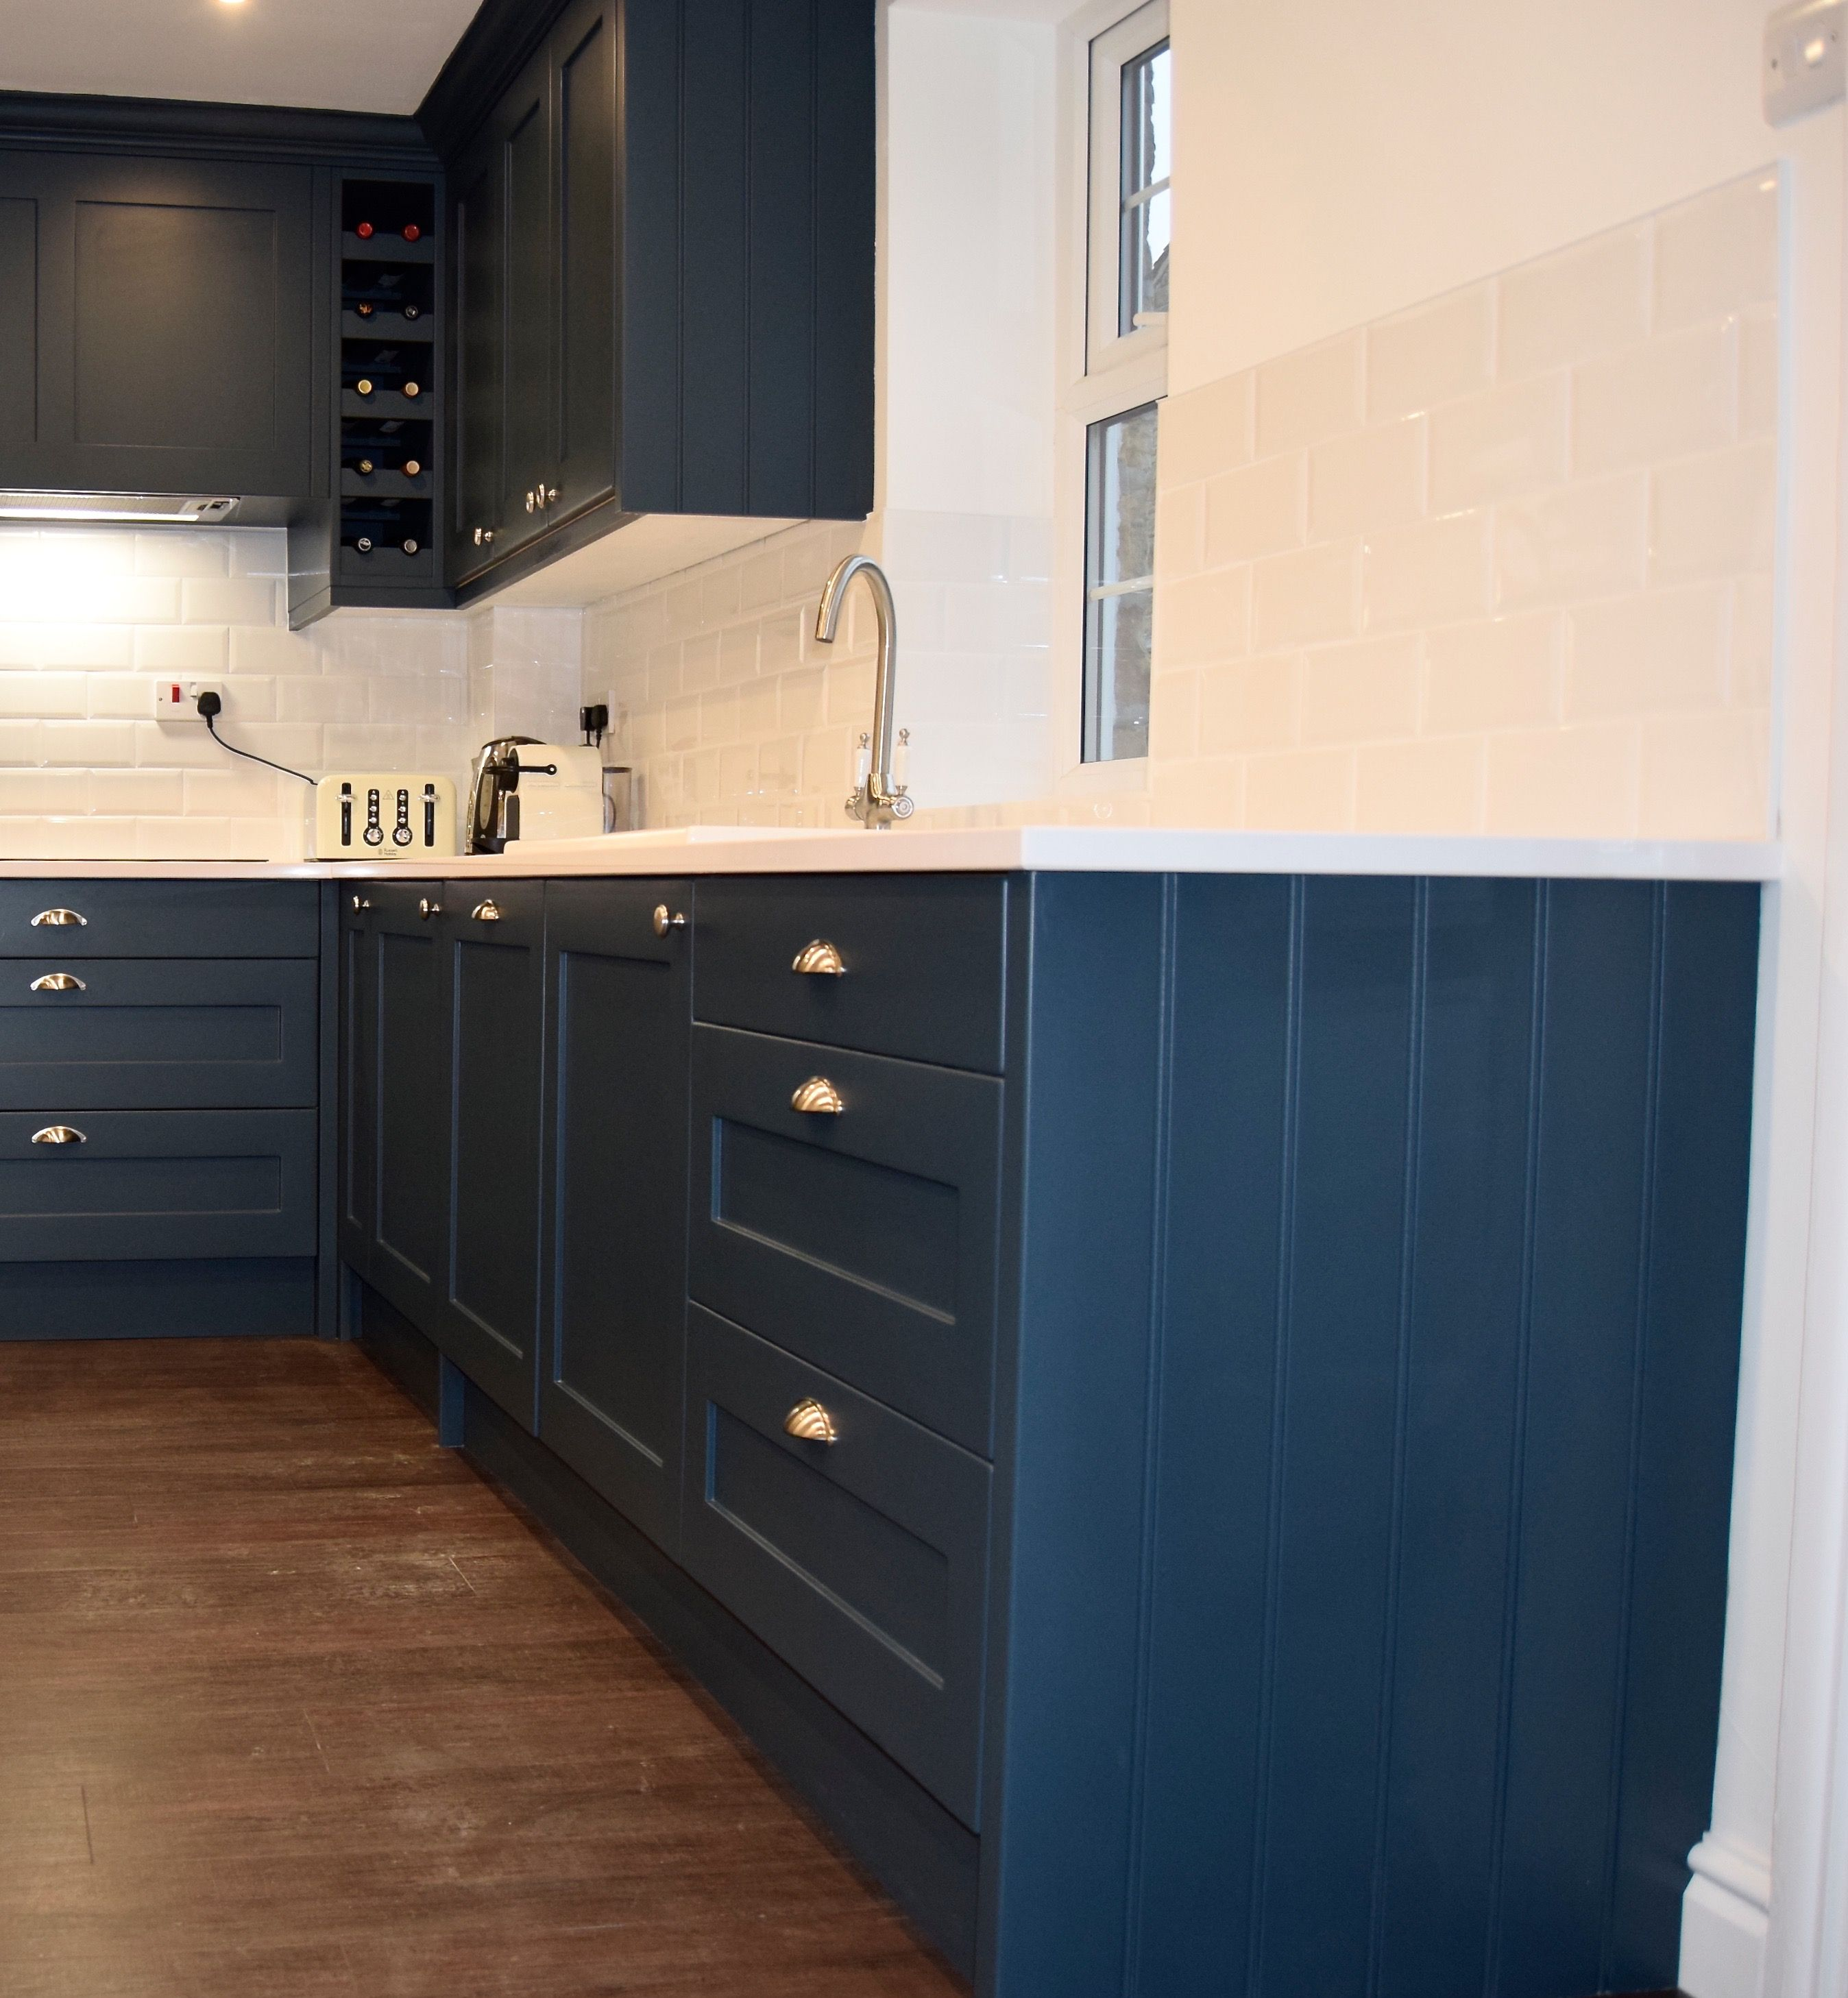 Bespoke handmade kitchens by qualified cabinet maker \'Gill Martinez ...